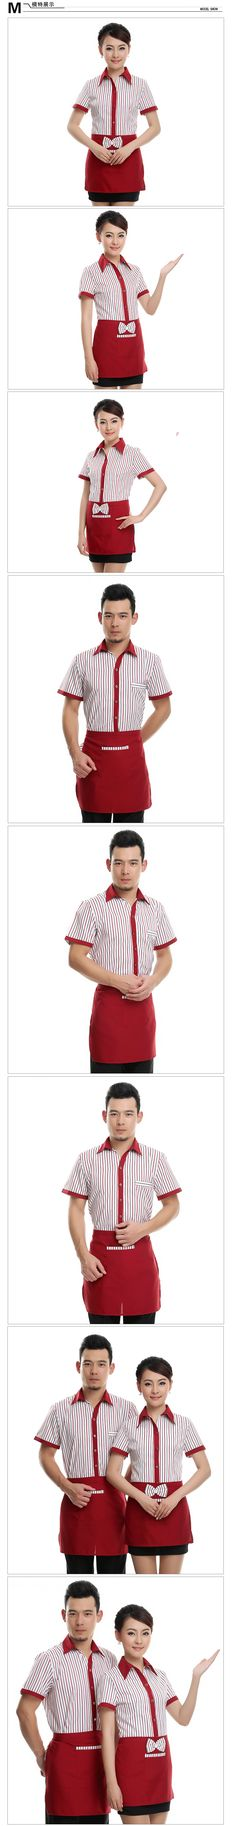 Aliexpress.com : Buy [10sets top&apron] short sleeve female waiter uniform work wear male ktv working uniforms bar work clothes wholesale from Reliable clothes exercise suppliers on Hotel Uniforms Wholesale. | Alibaba Group